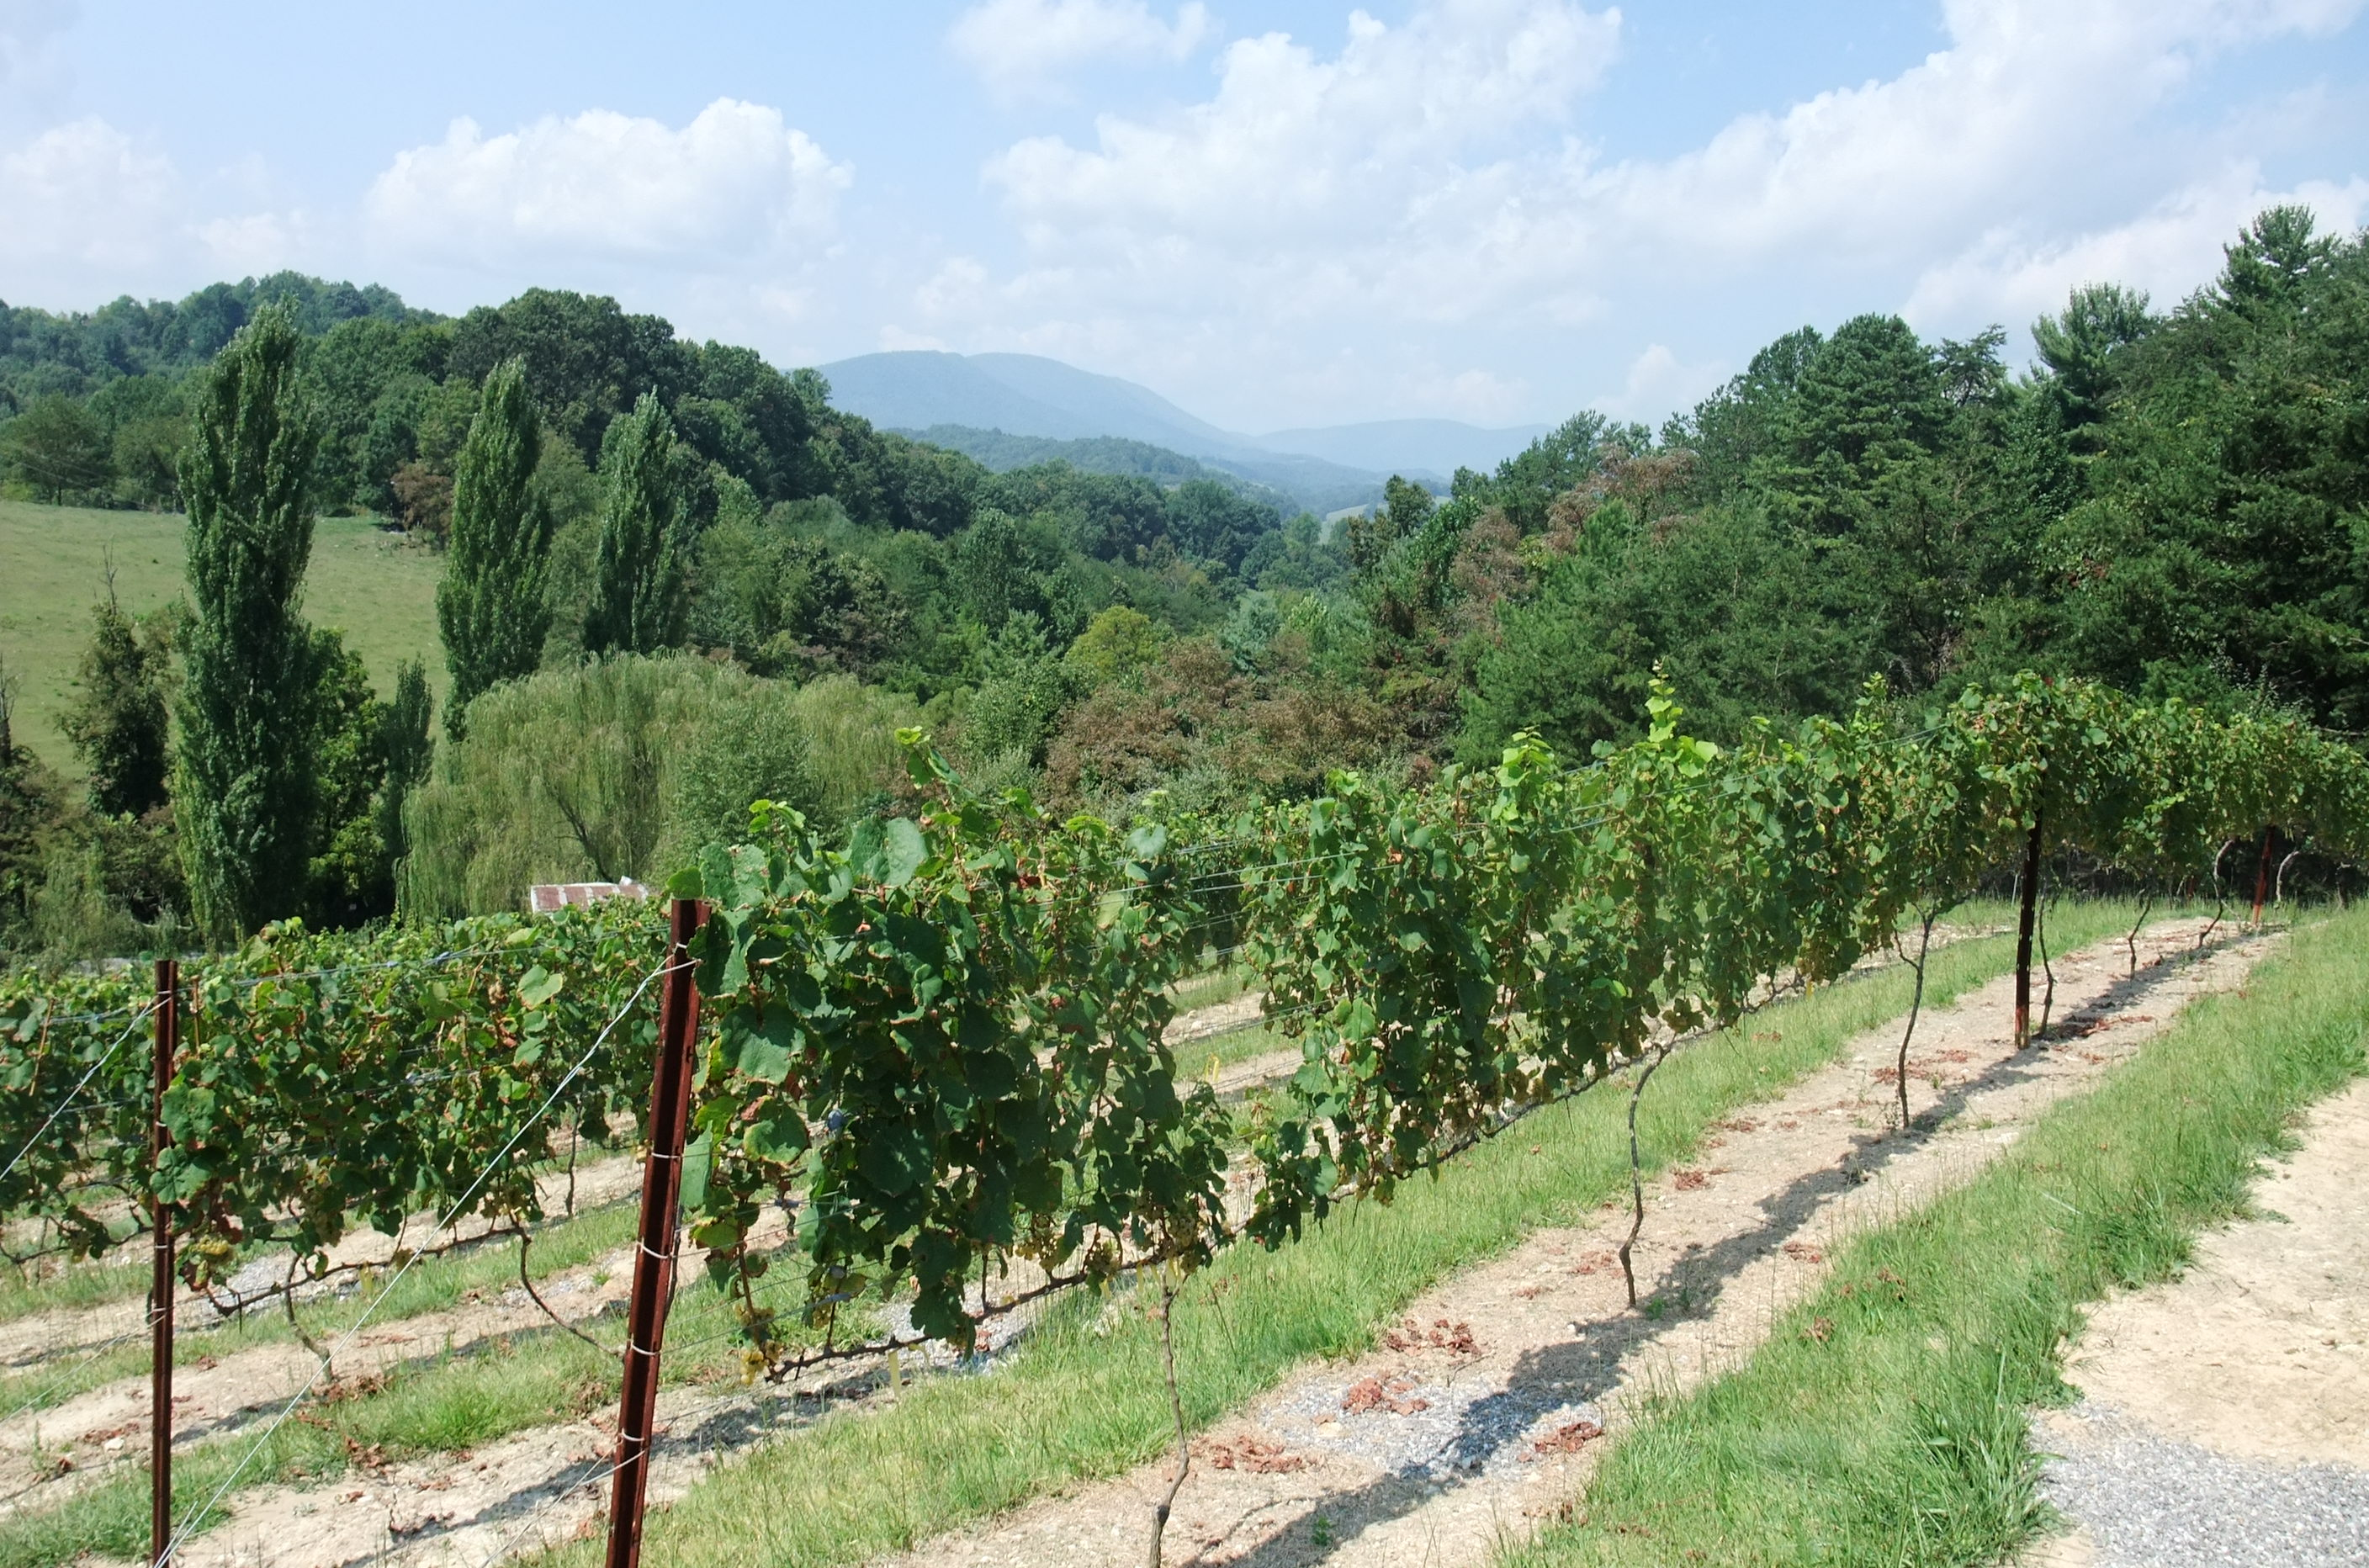 Giles County, JBR Vineyards & Winery